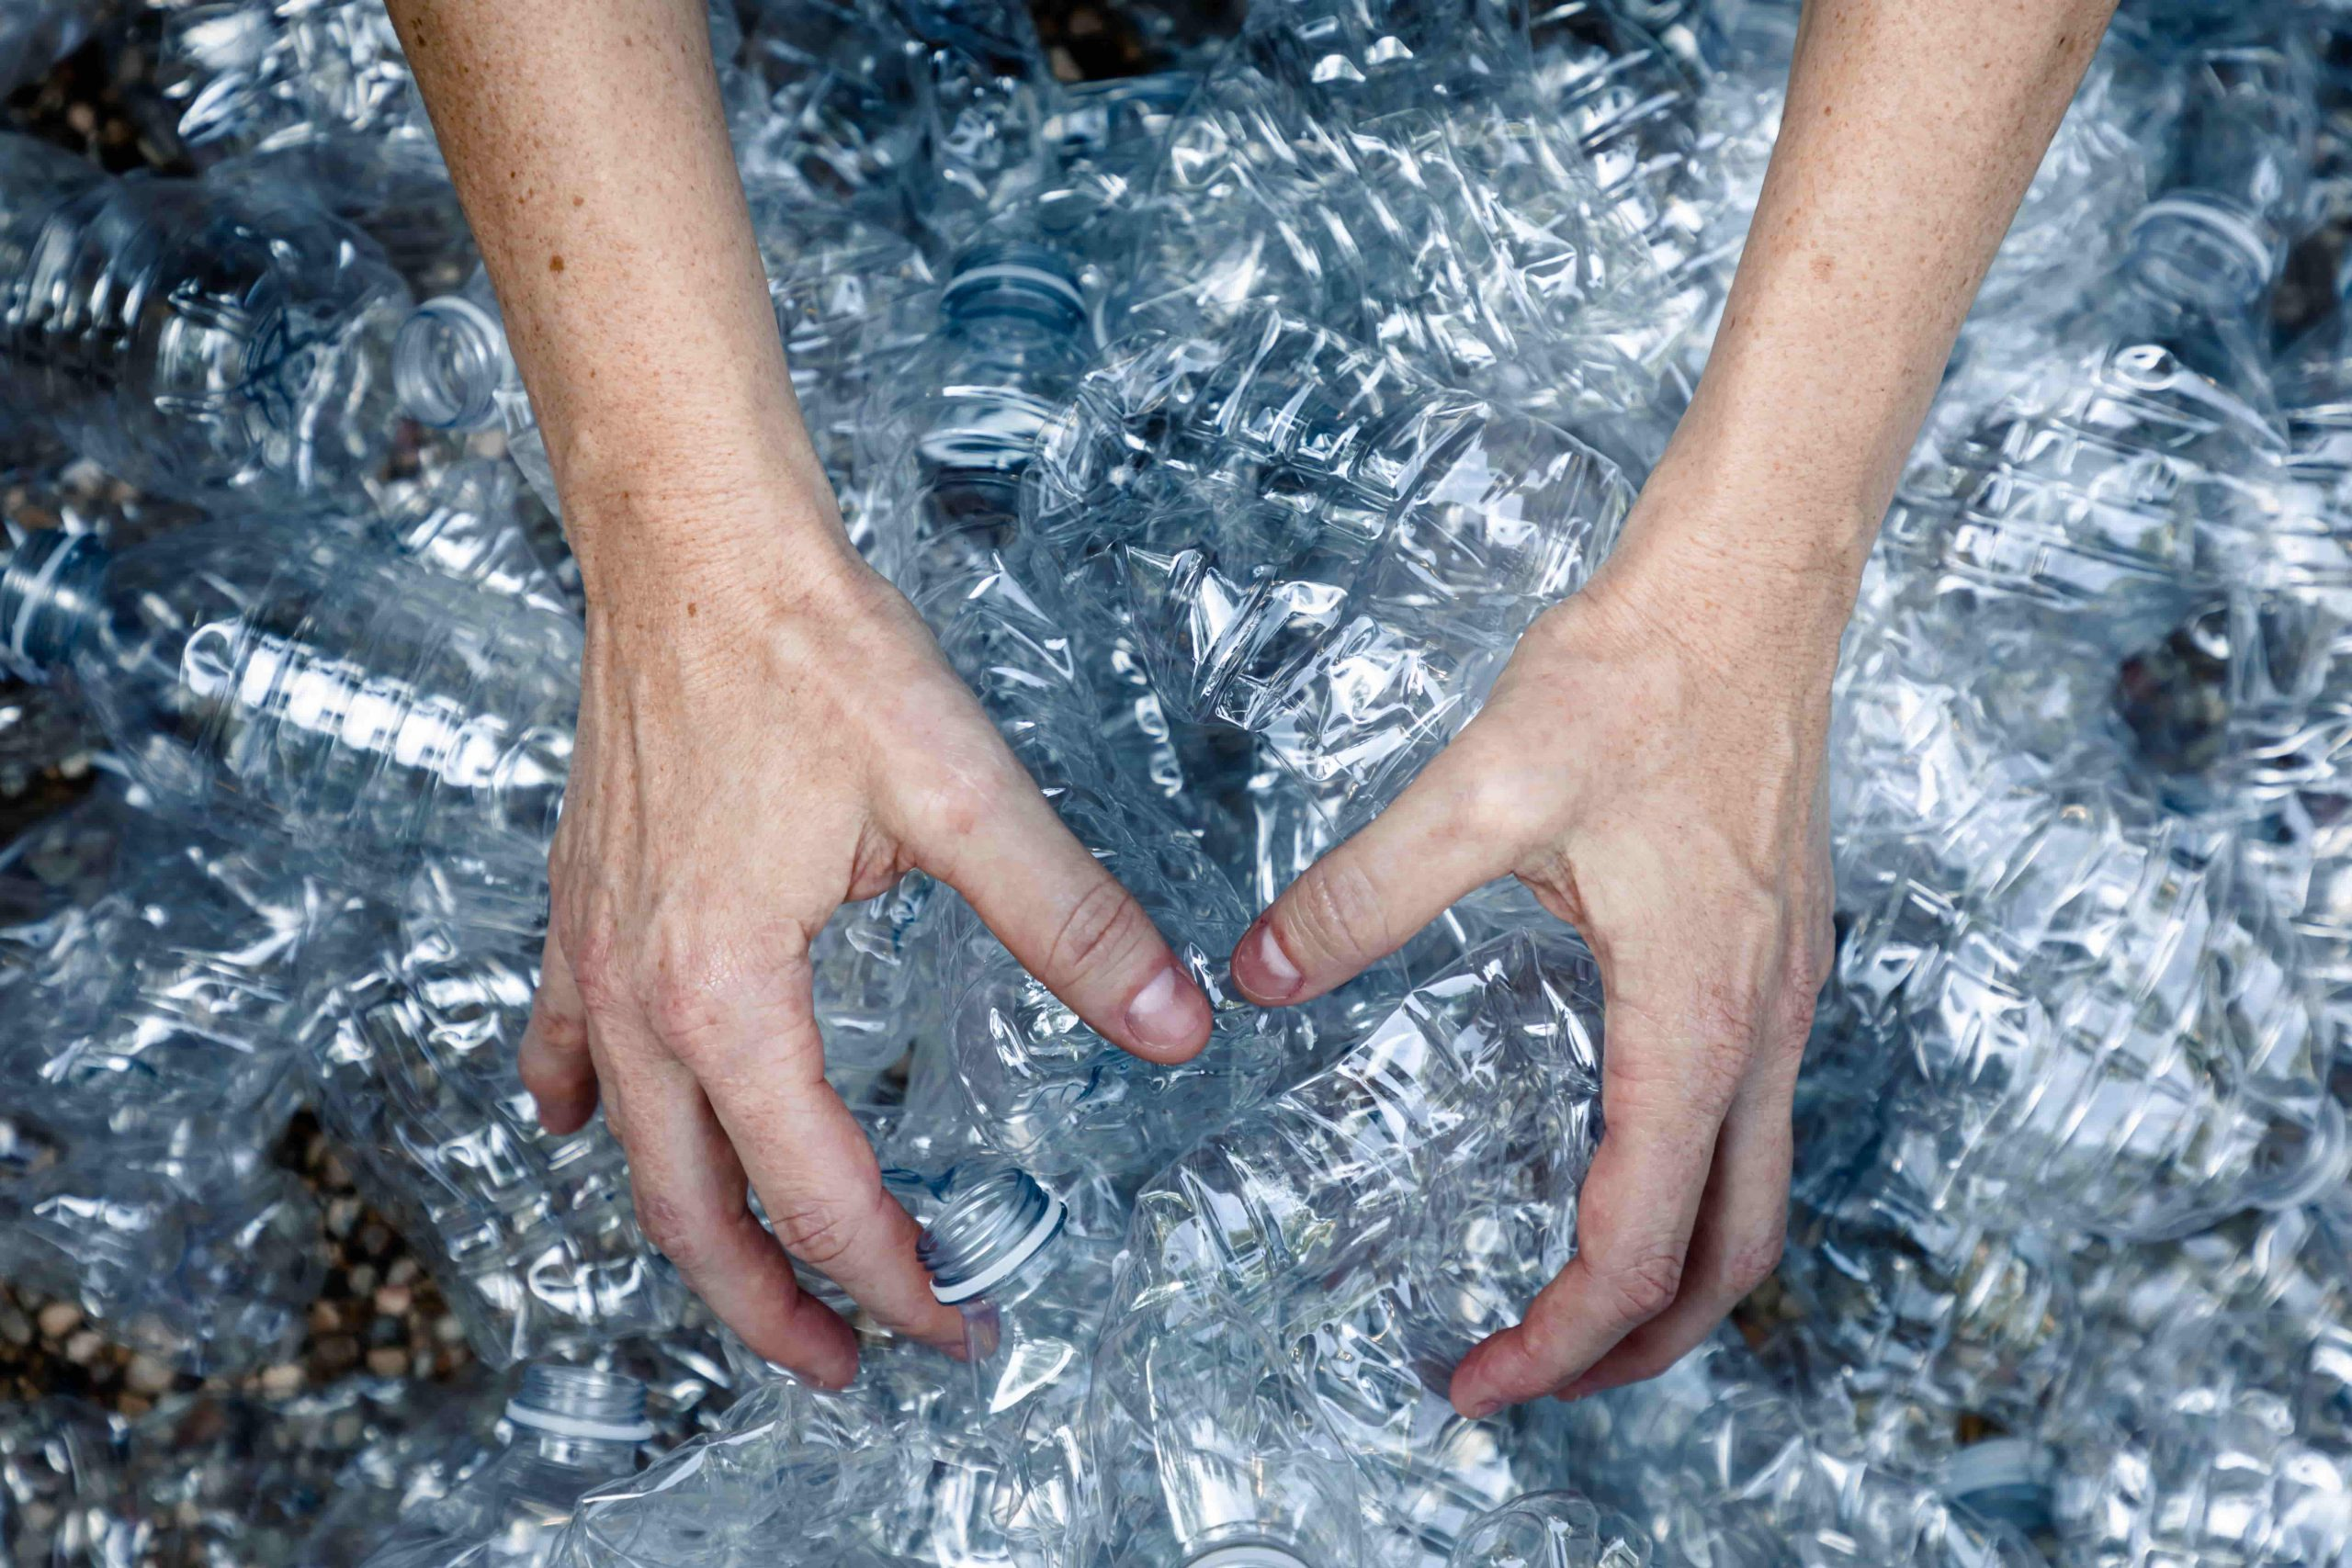 Not easy as it sounds: Recycling of plastic bottles